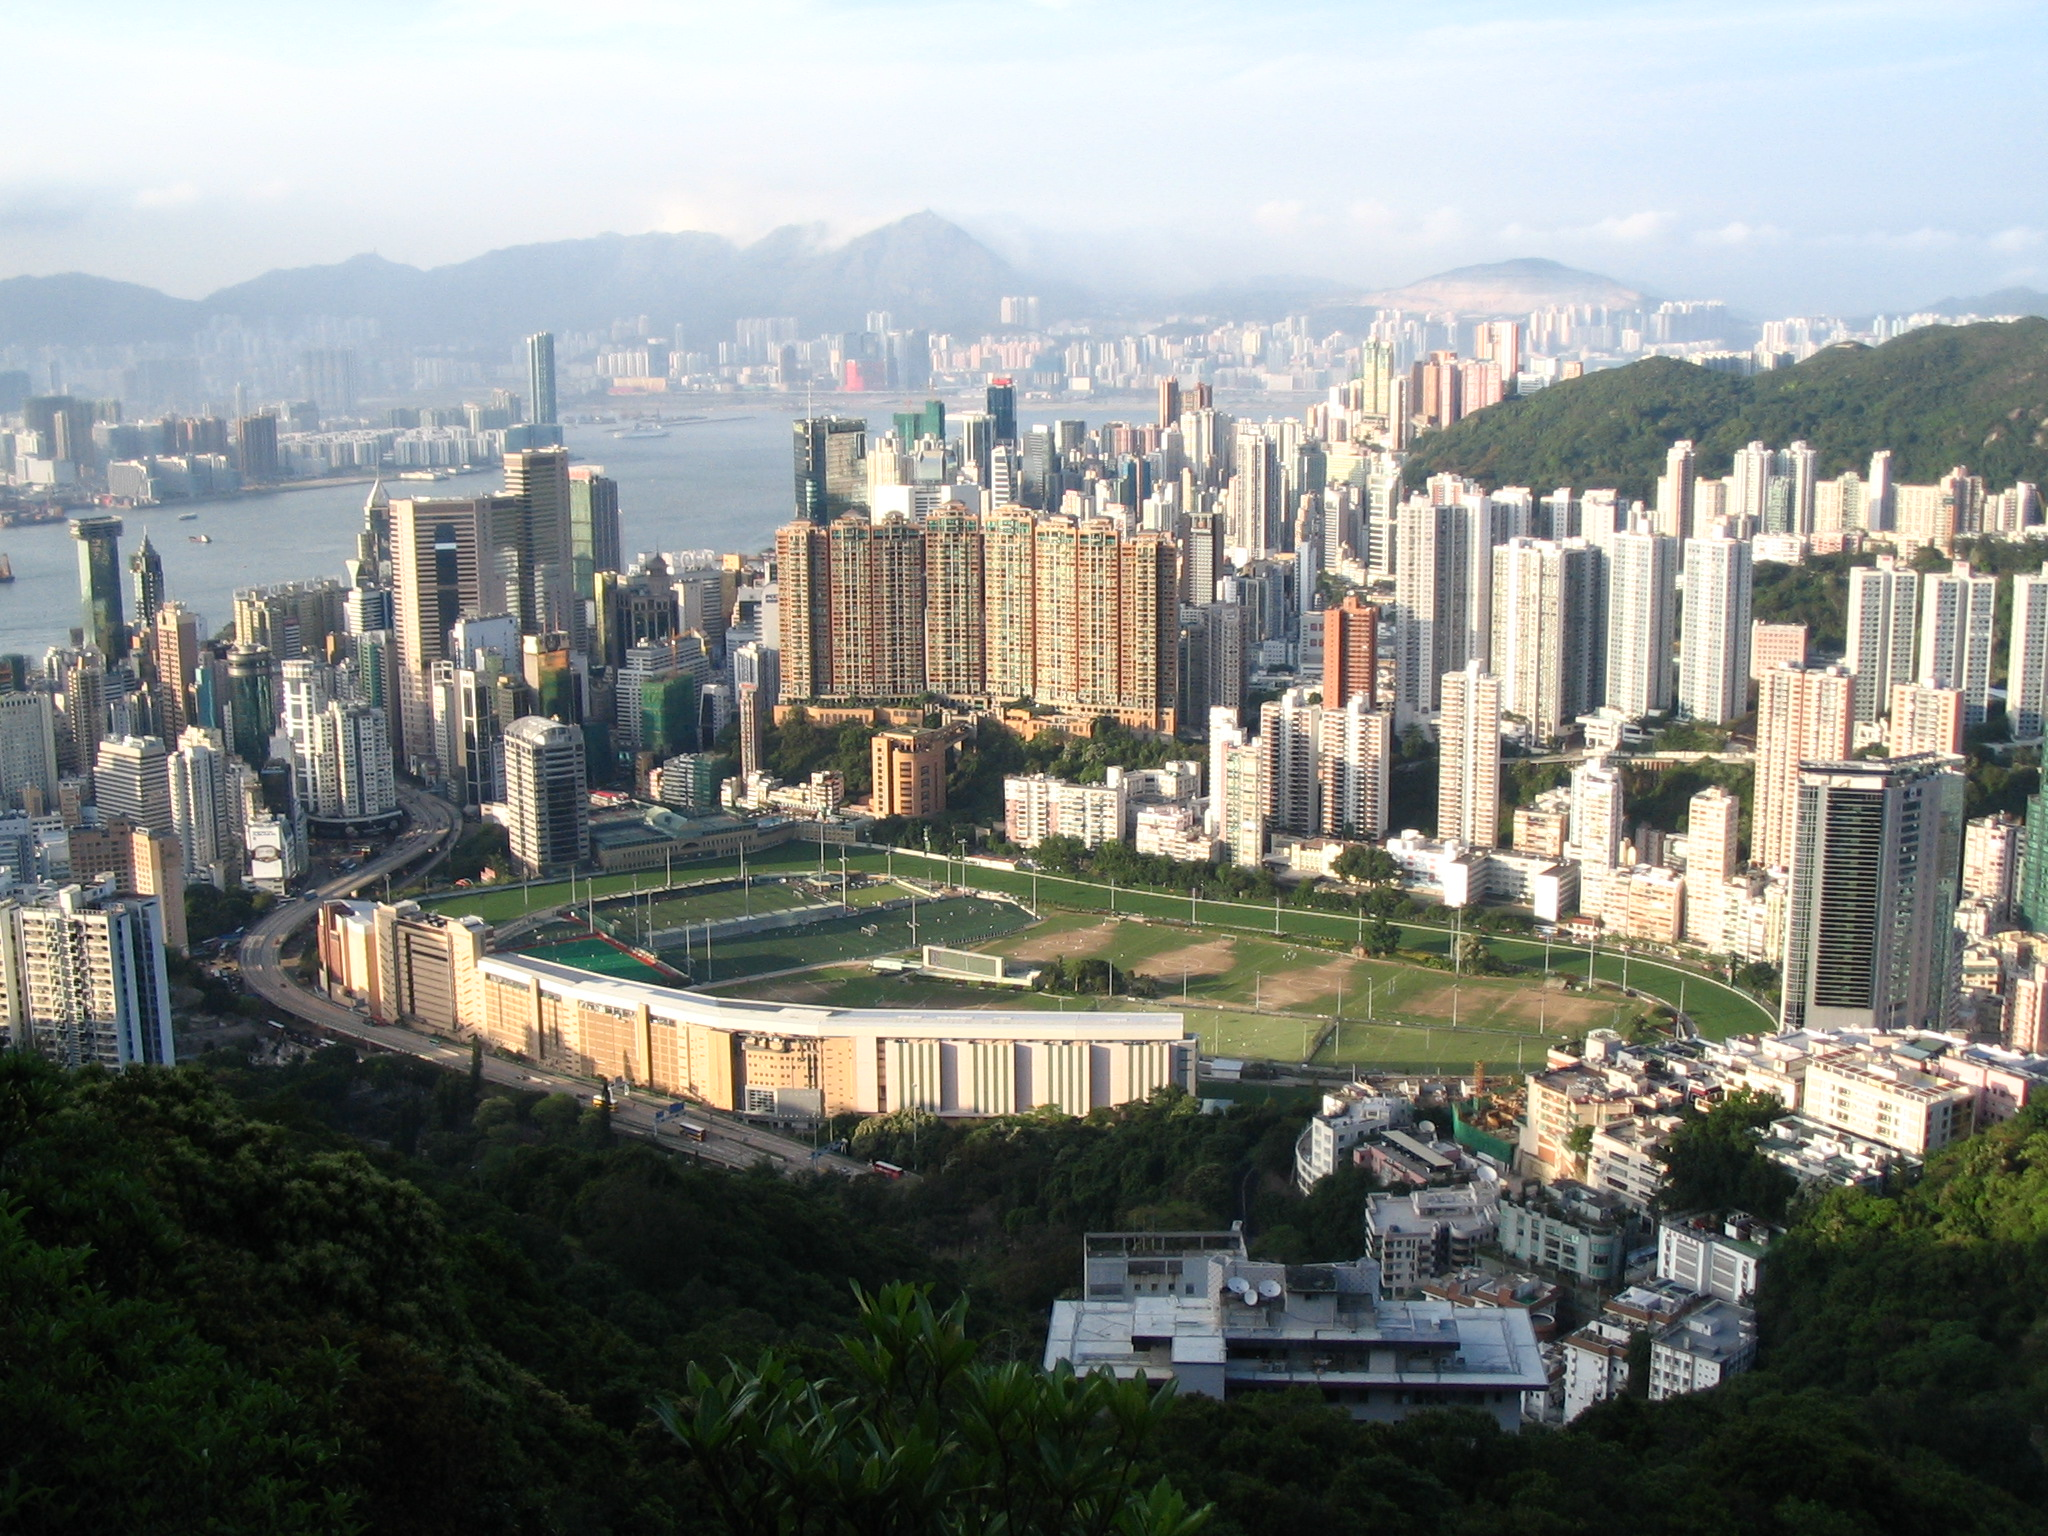 Happy Valley Racecourse by Minghong/Wiki Commons